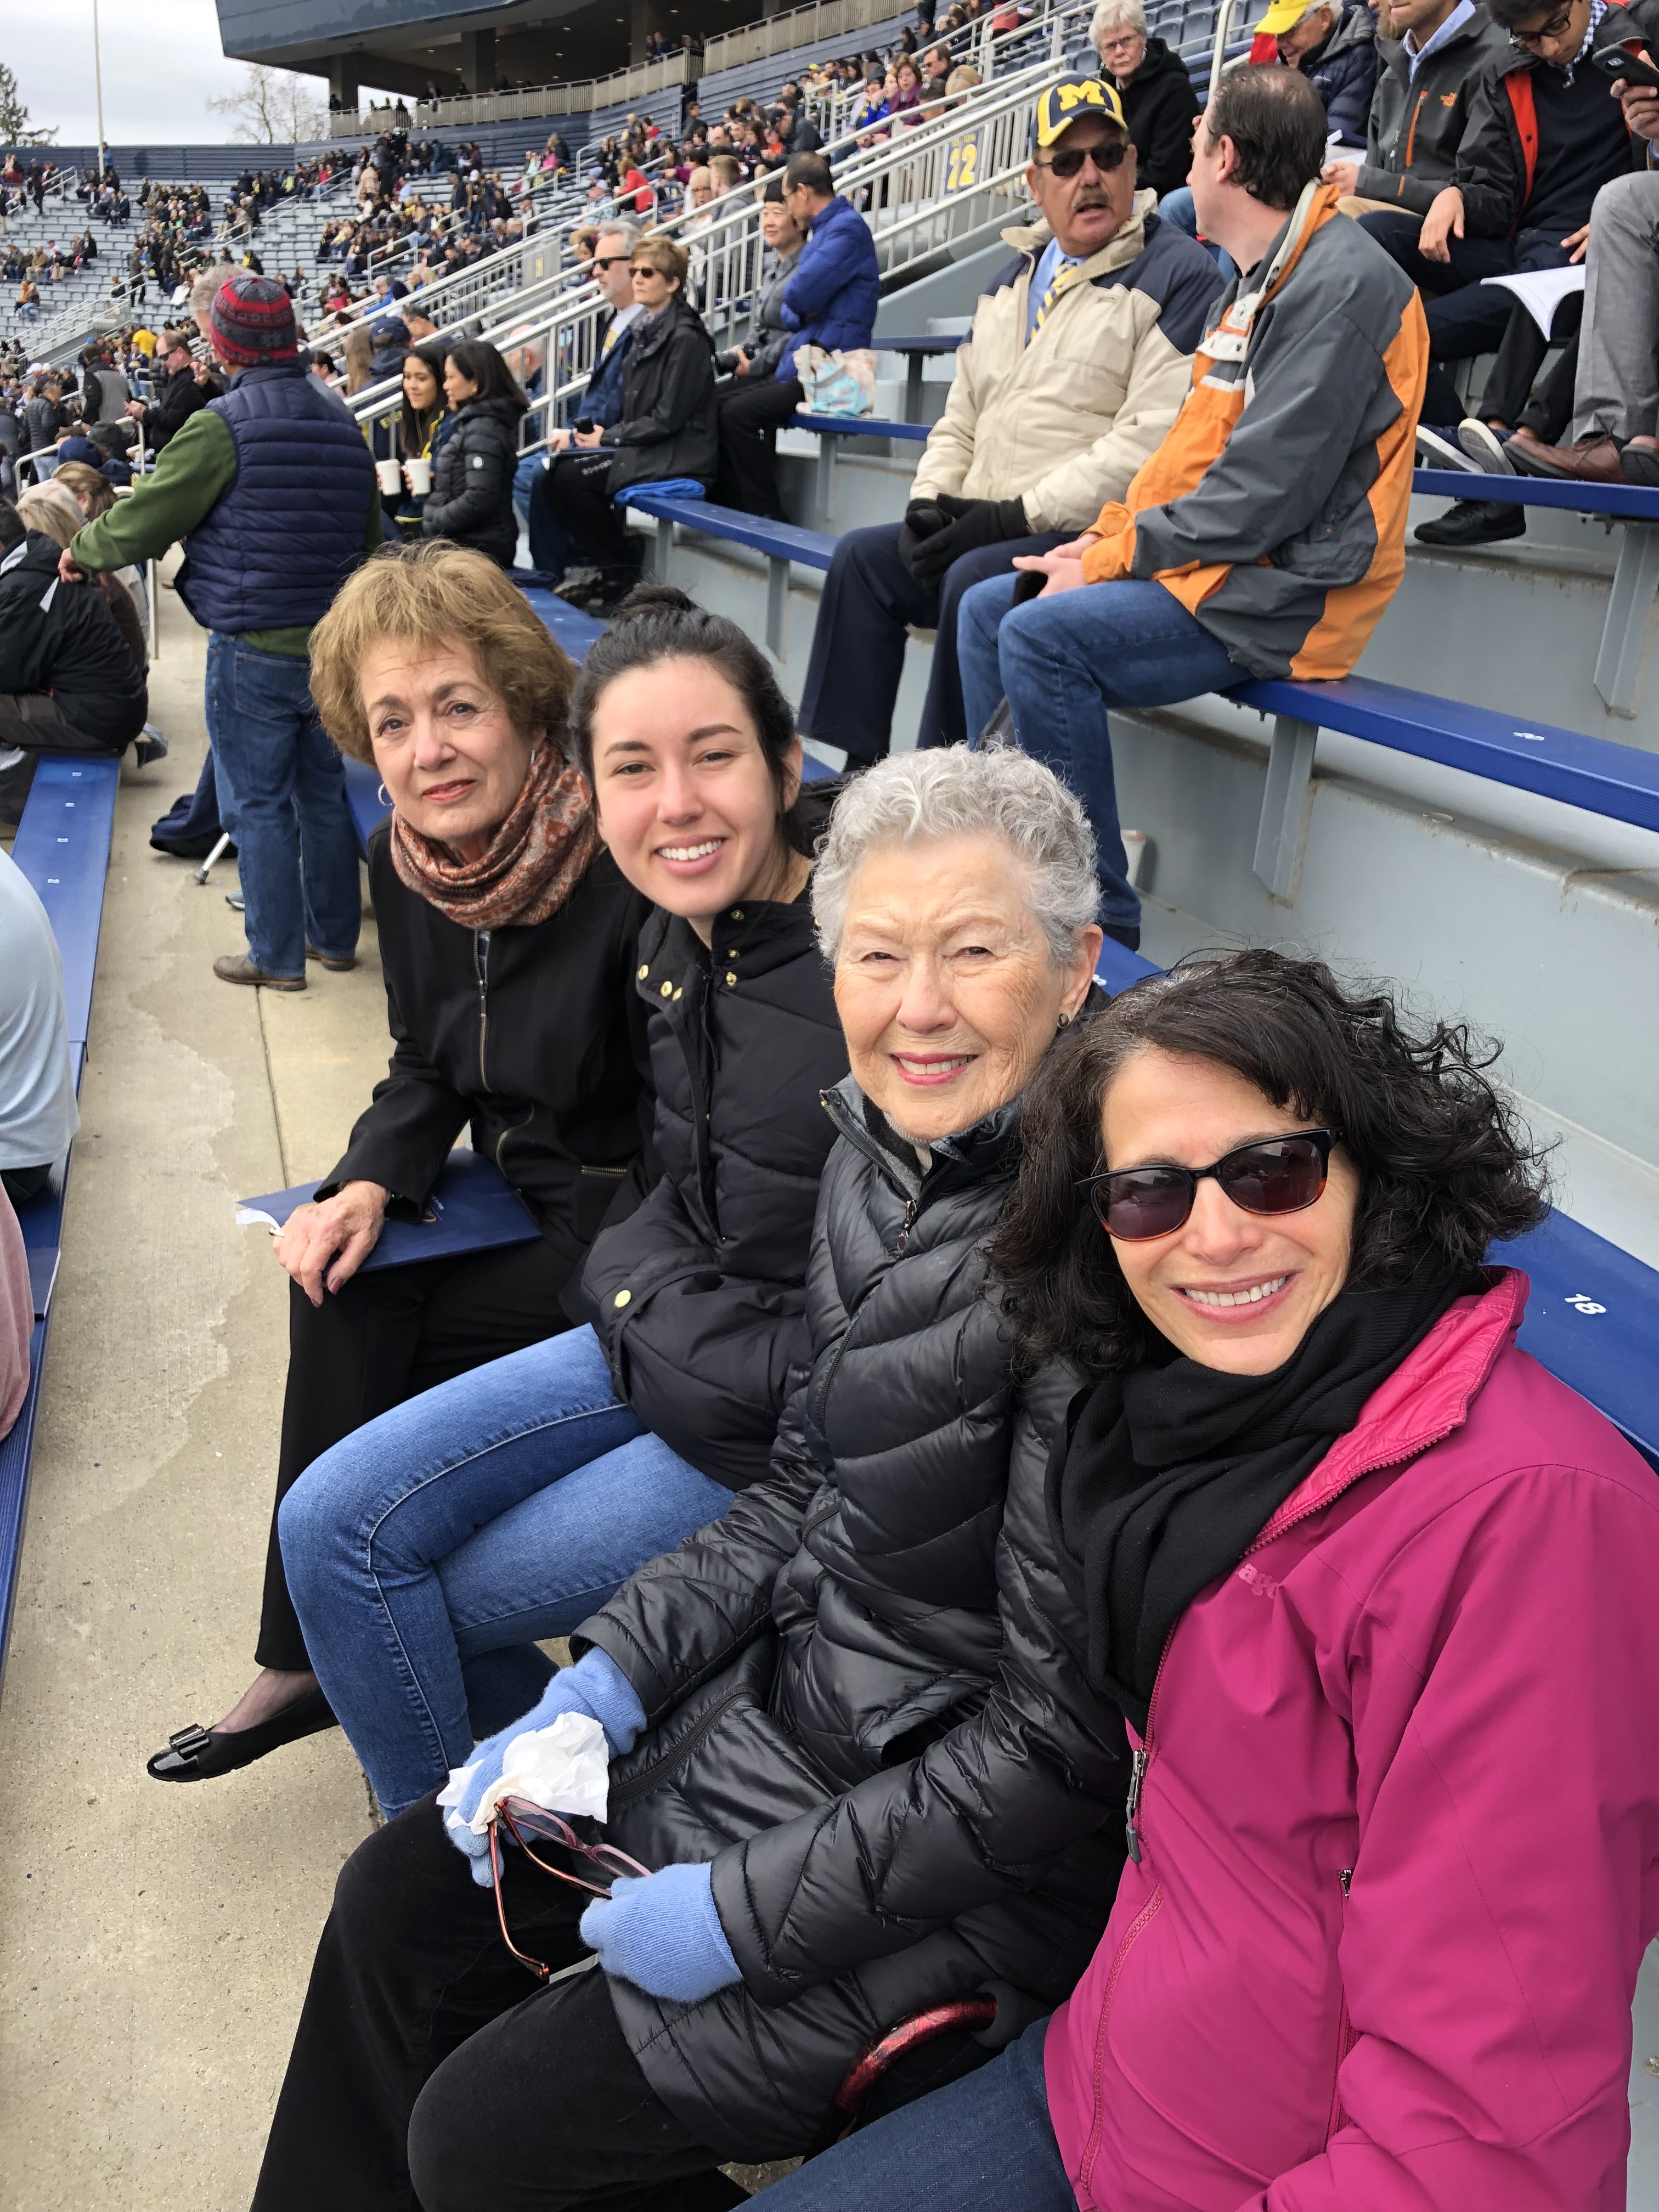 Photo of Jill Feldman and family members at the 2019 Spring Commencement